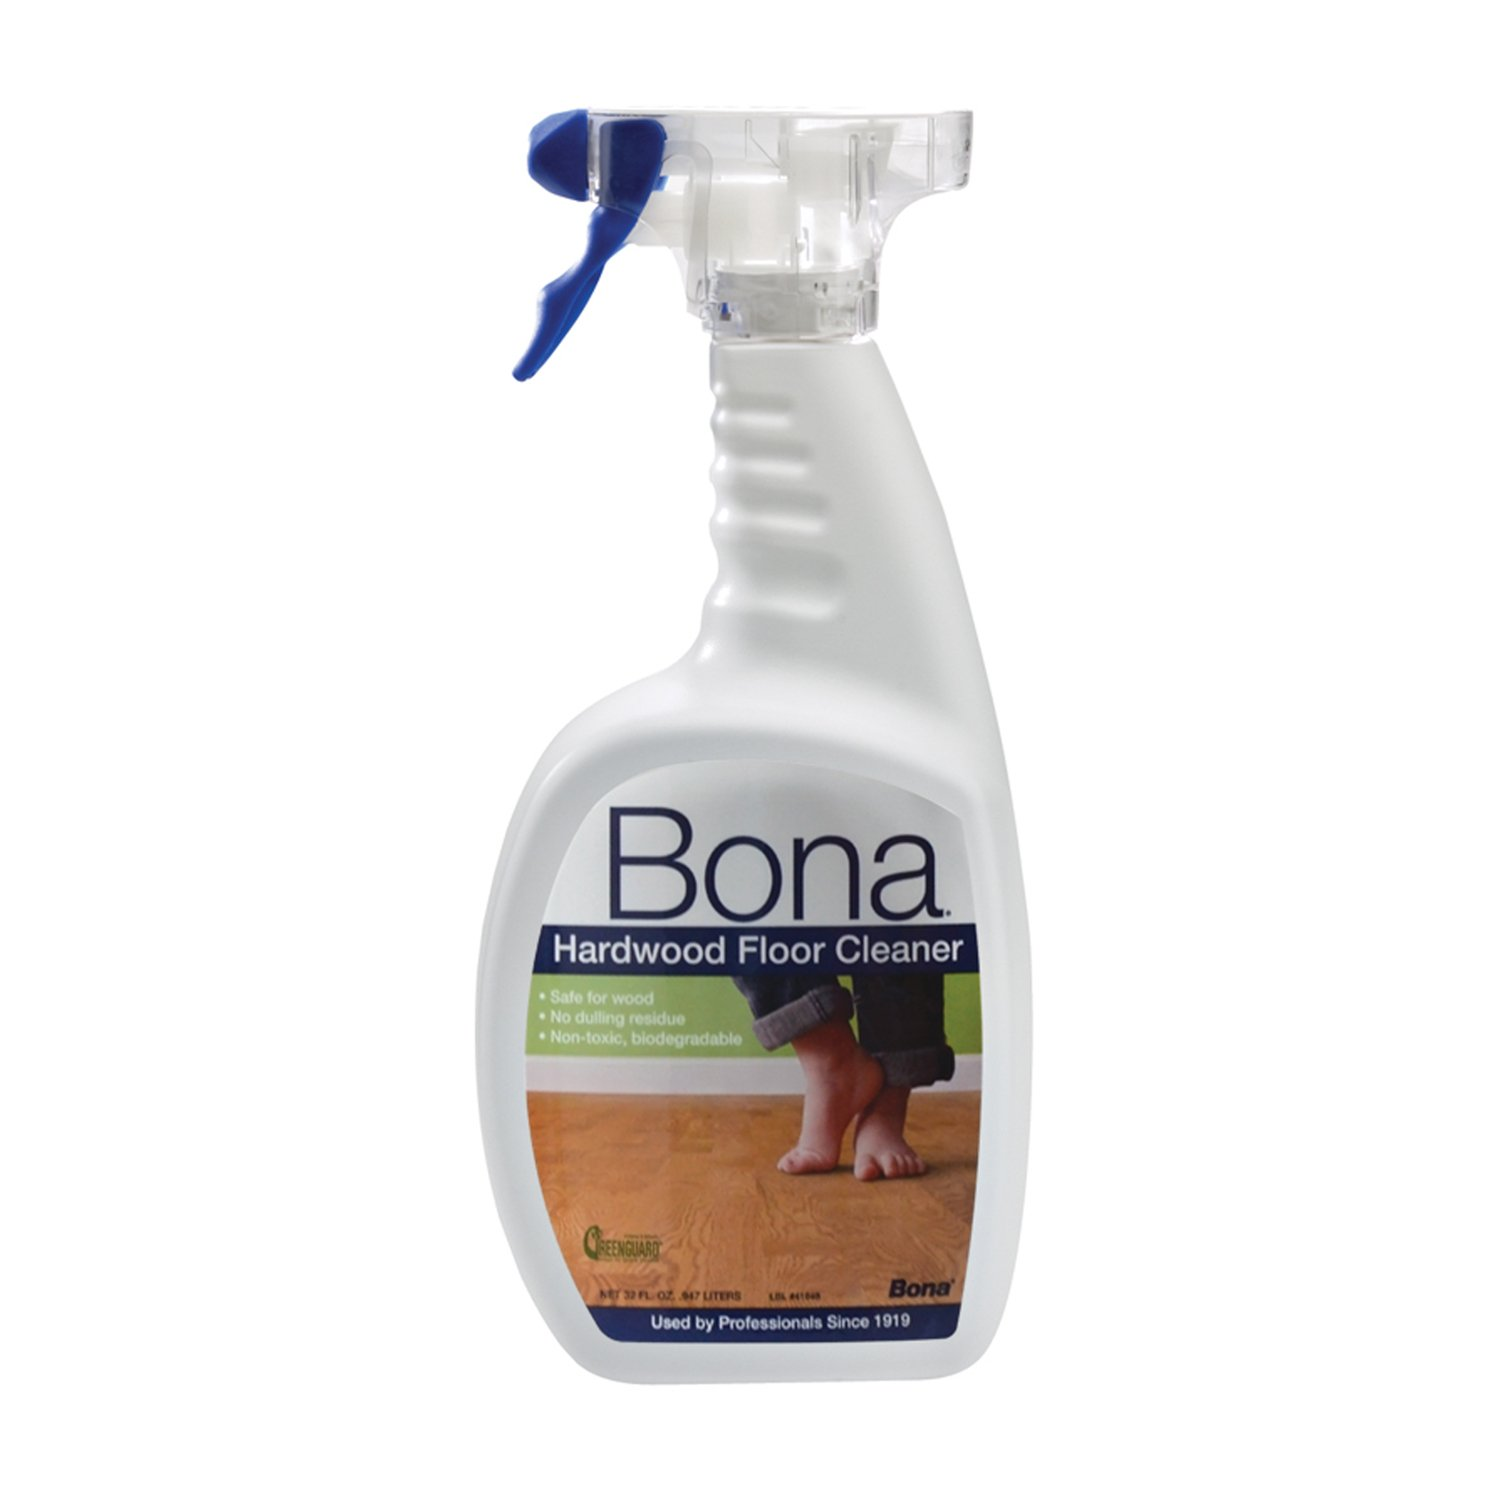 Bona hardwood floor cleaner spray 32 oz new free for Bona floor cleaner